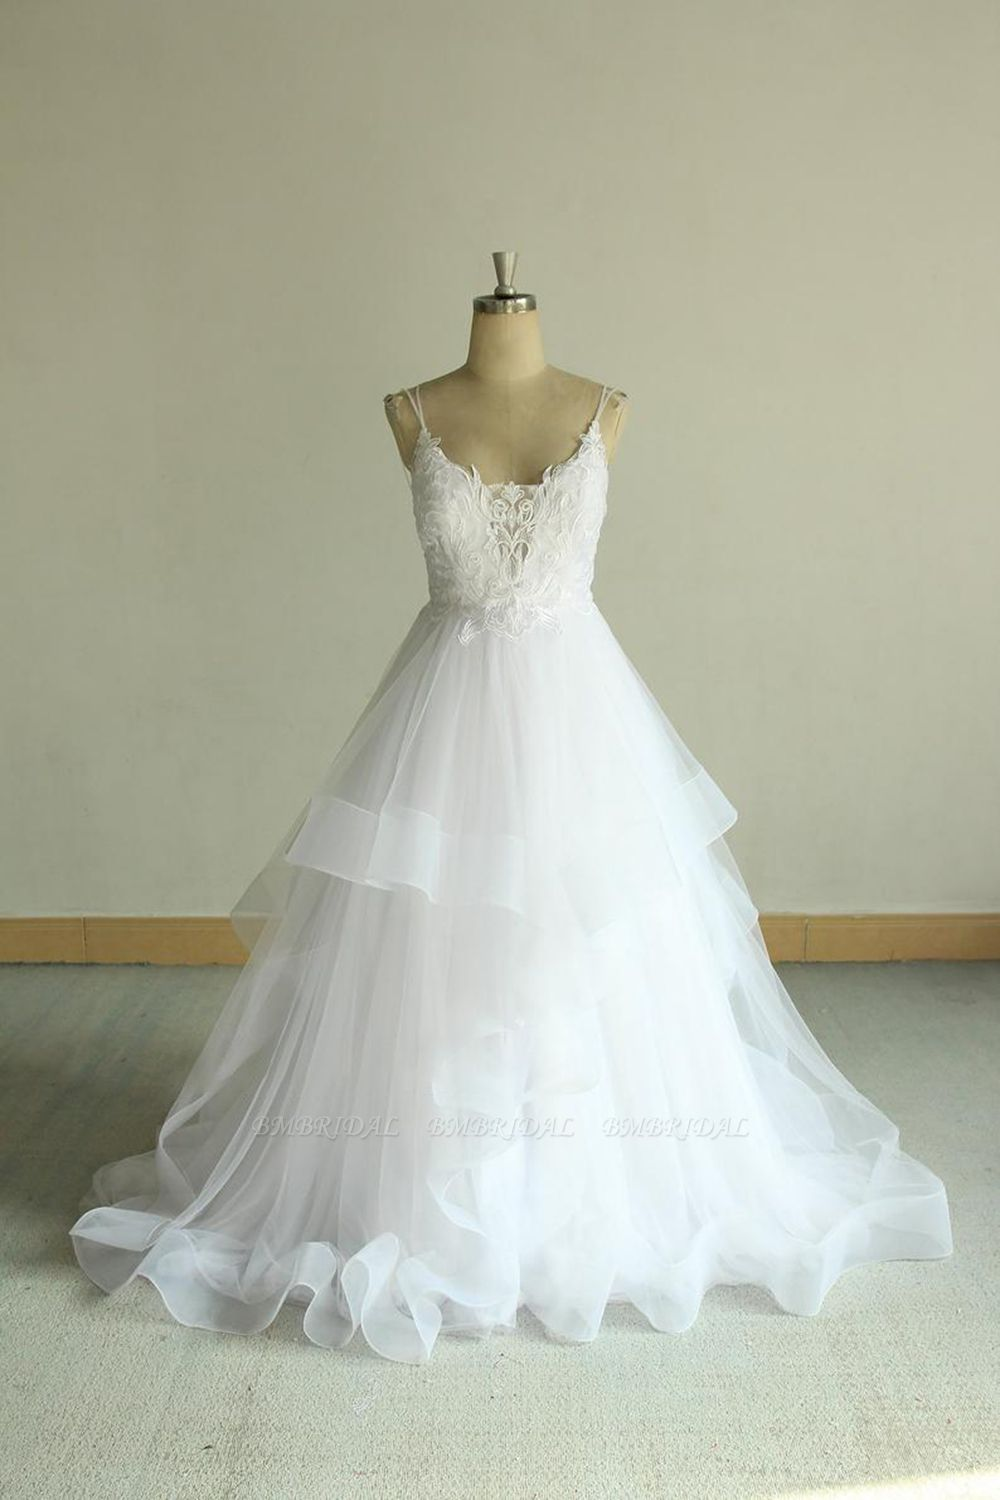 BMbridal Sexy Spaghetti Straps Tulle White Wedding Dress Sleeveless A-line Bridal Gowns On Sale